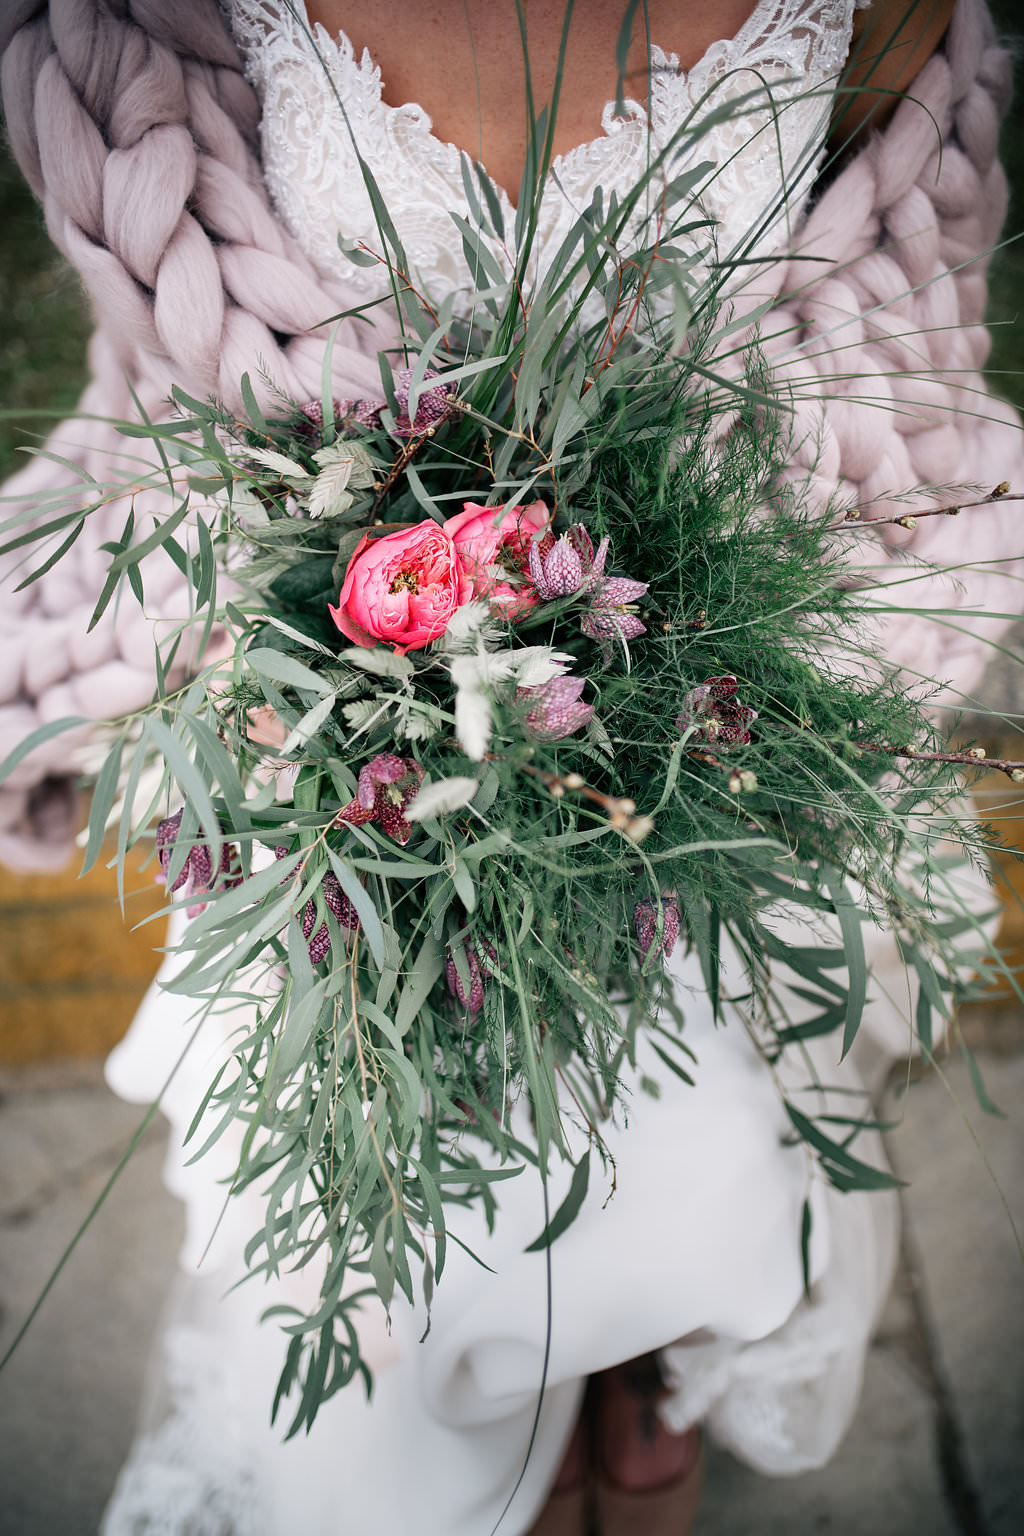 Bouquet Bride Bridal Flowers Greenery Foliage Hellebore Peony Lapstone Barn Wedding Ideas Cotswolds Katie Hamilton Photography